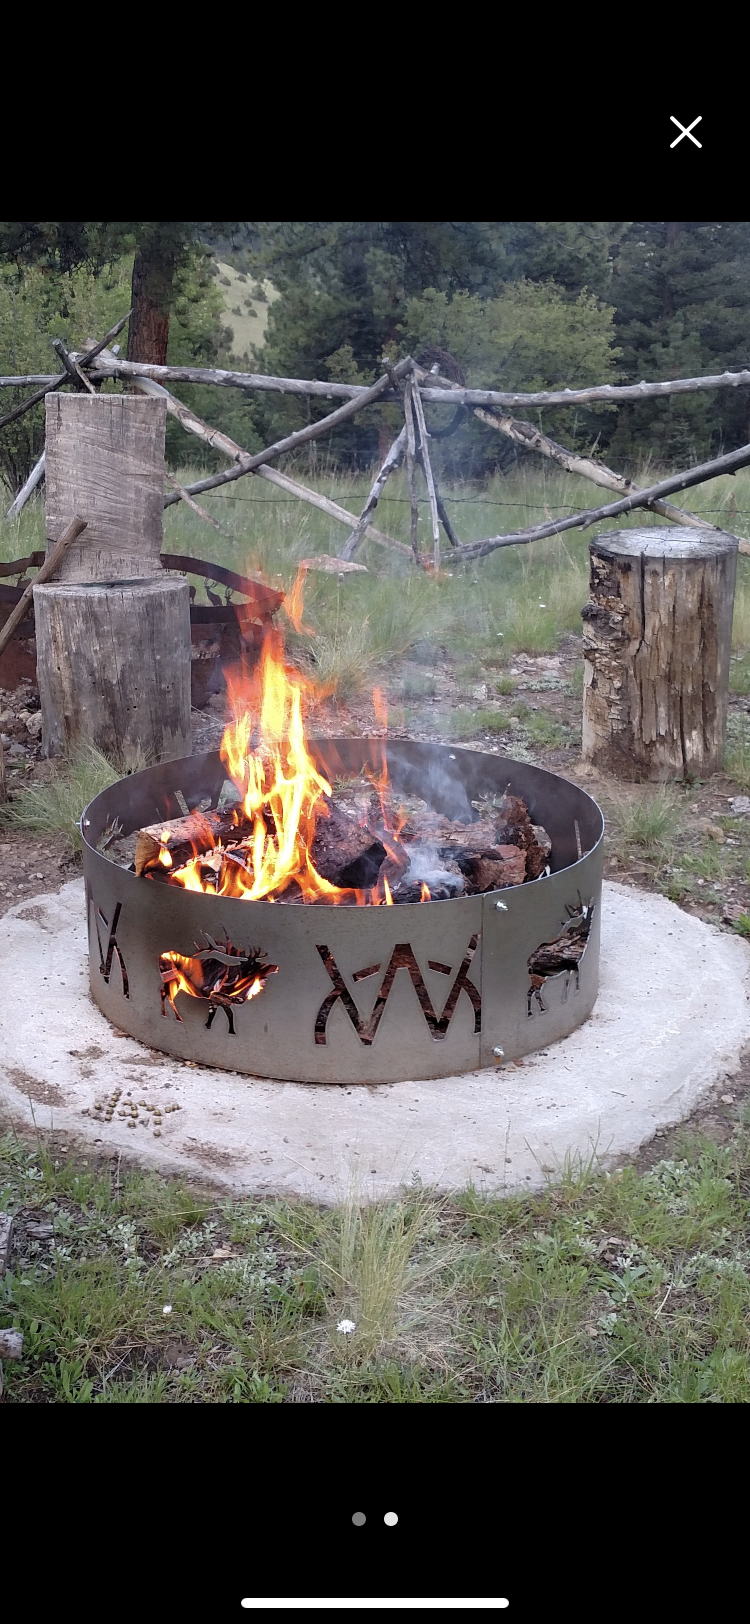 You Design Fire Ring Or Custom Fire Ring Customized Design Etsy Fire Ring Outdoor Fire Pit Ring